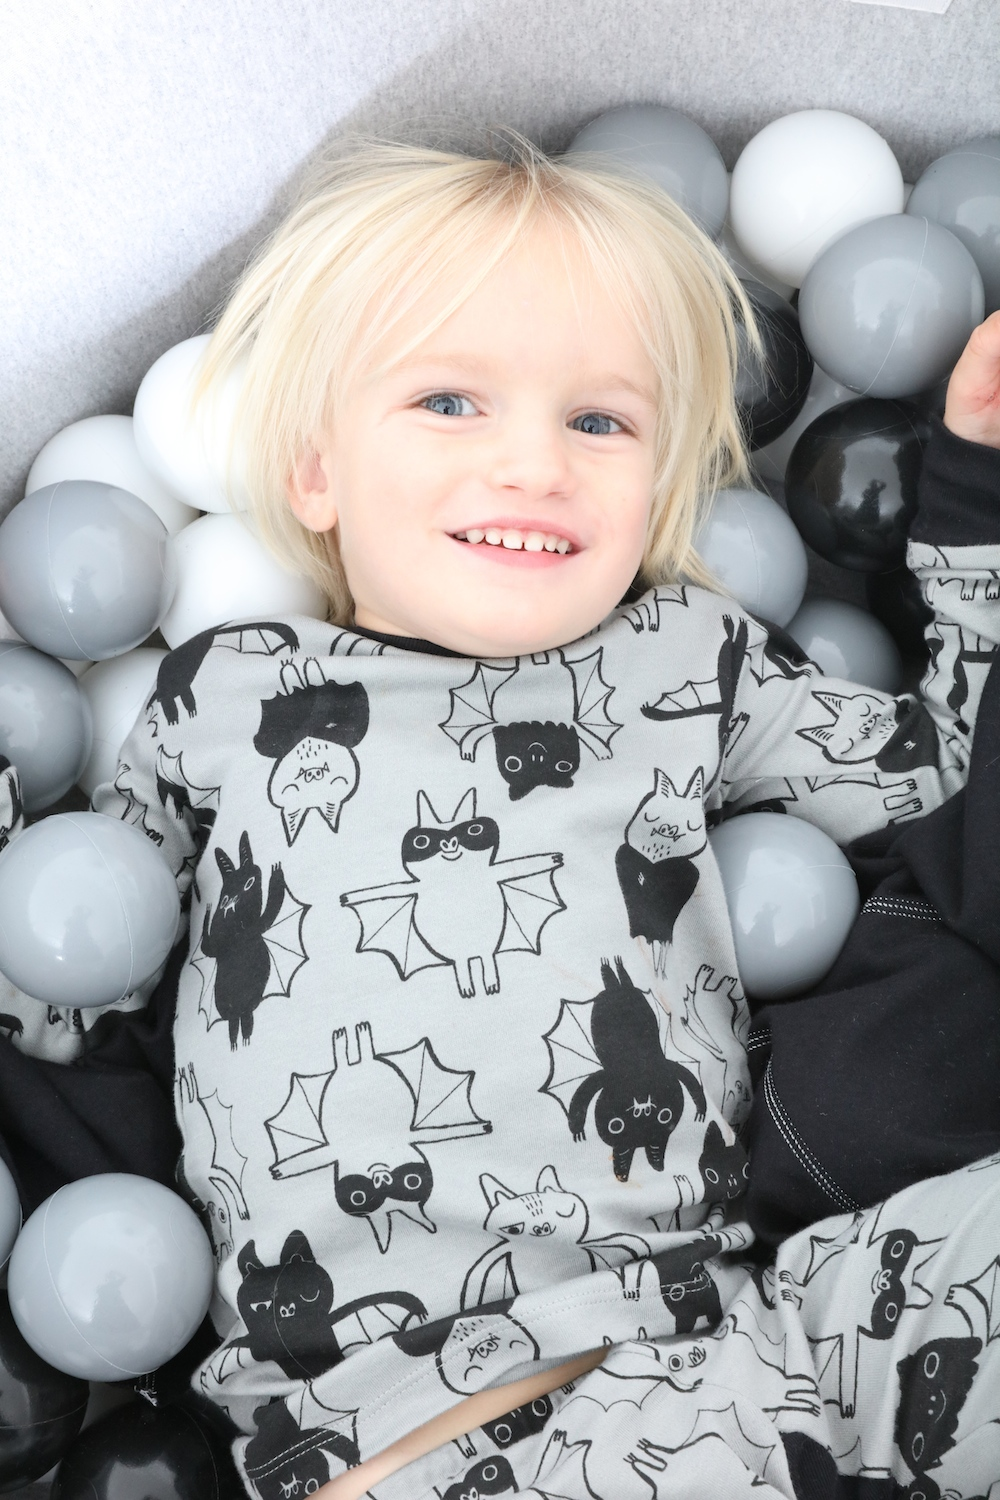 the_modern_nursery_ball_pit_monochrome